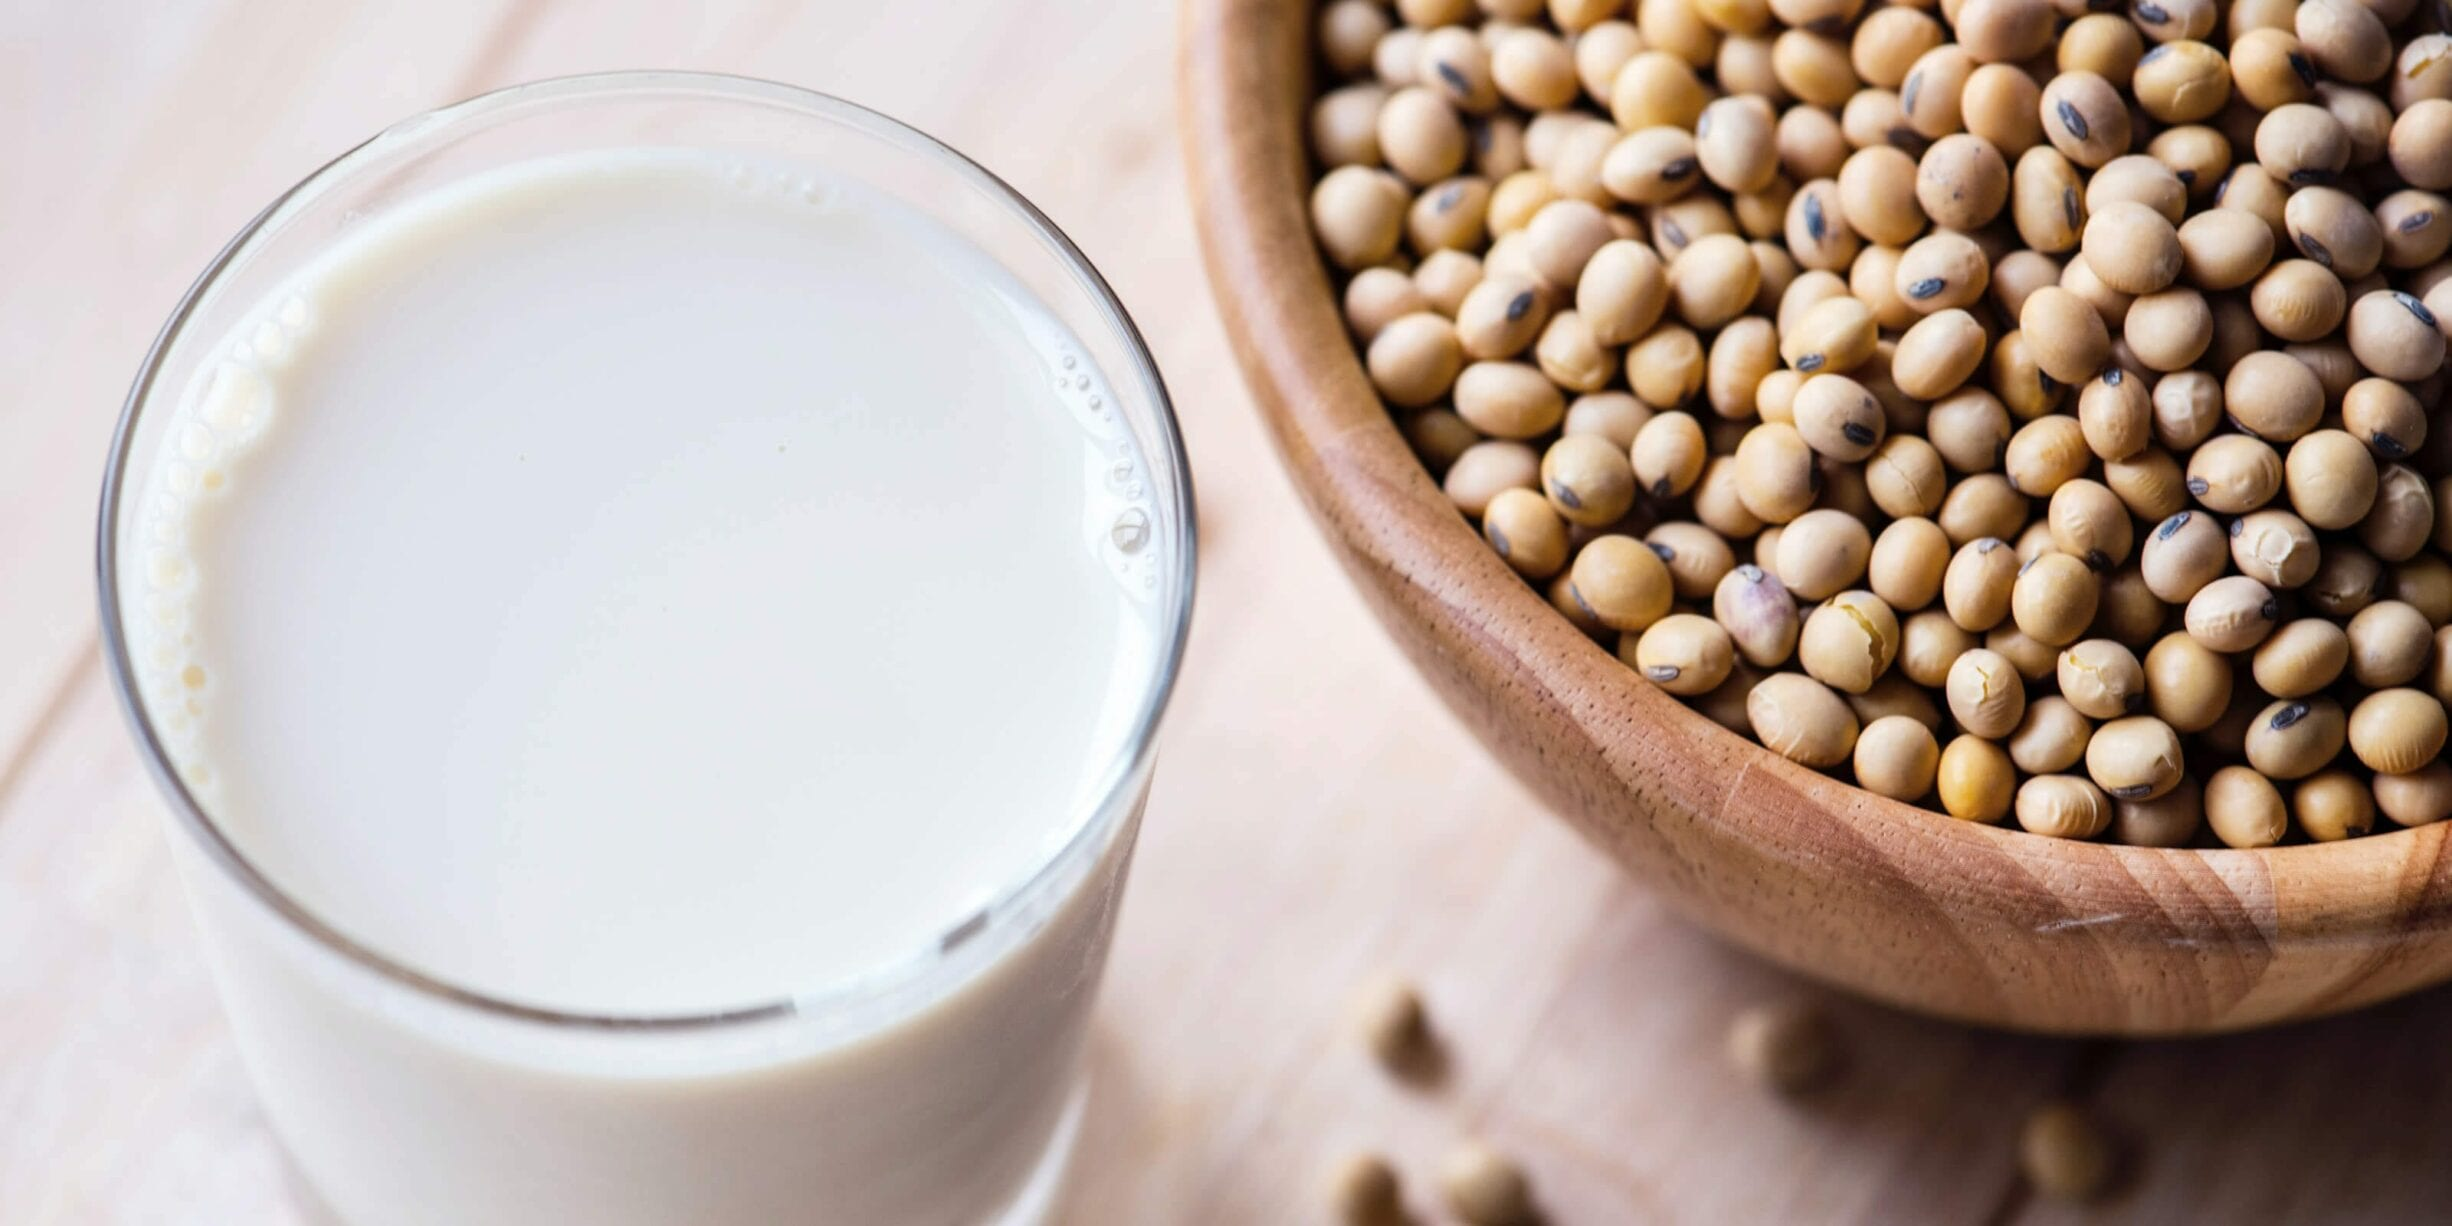 glass of milk, bowl of beans